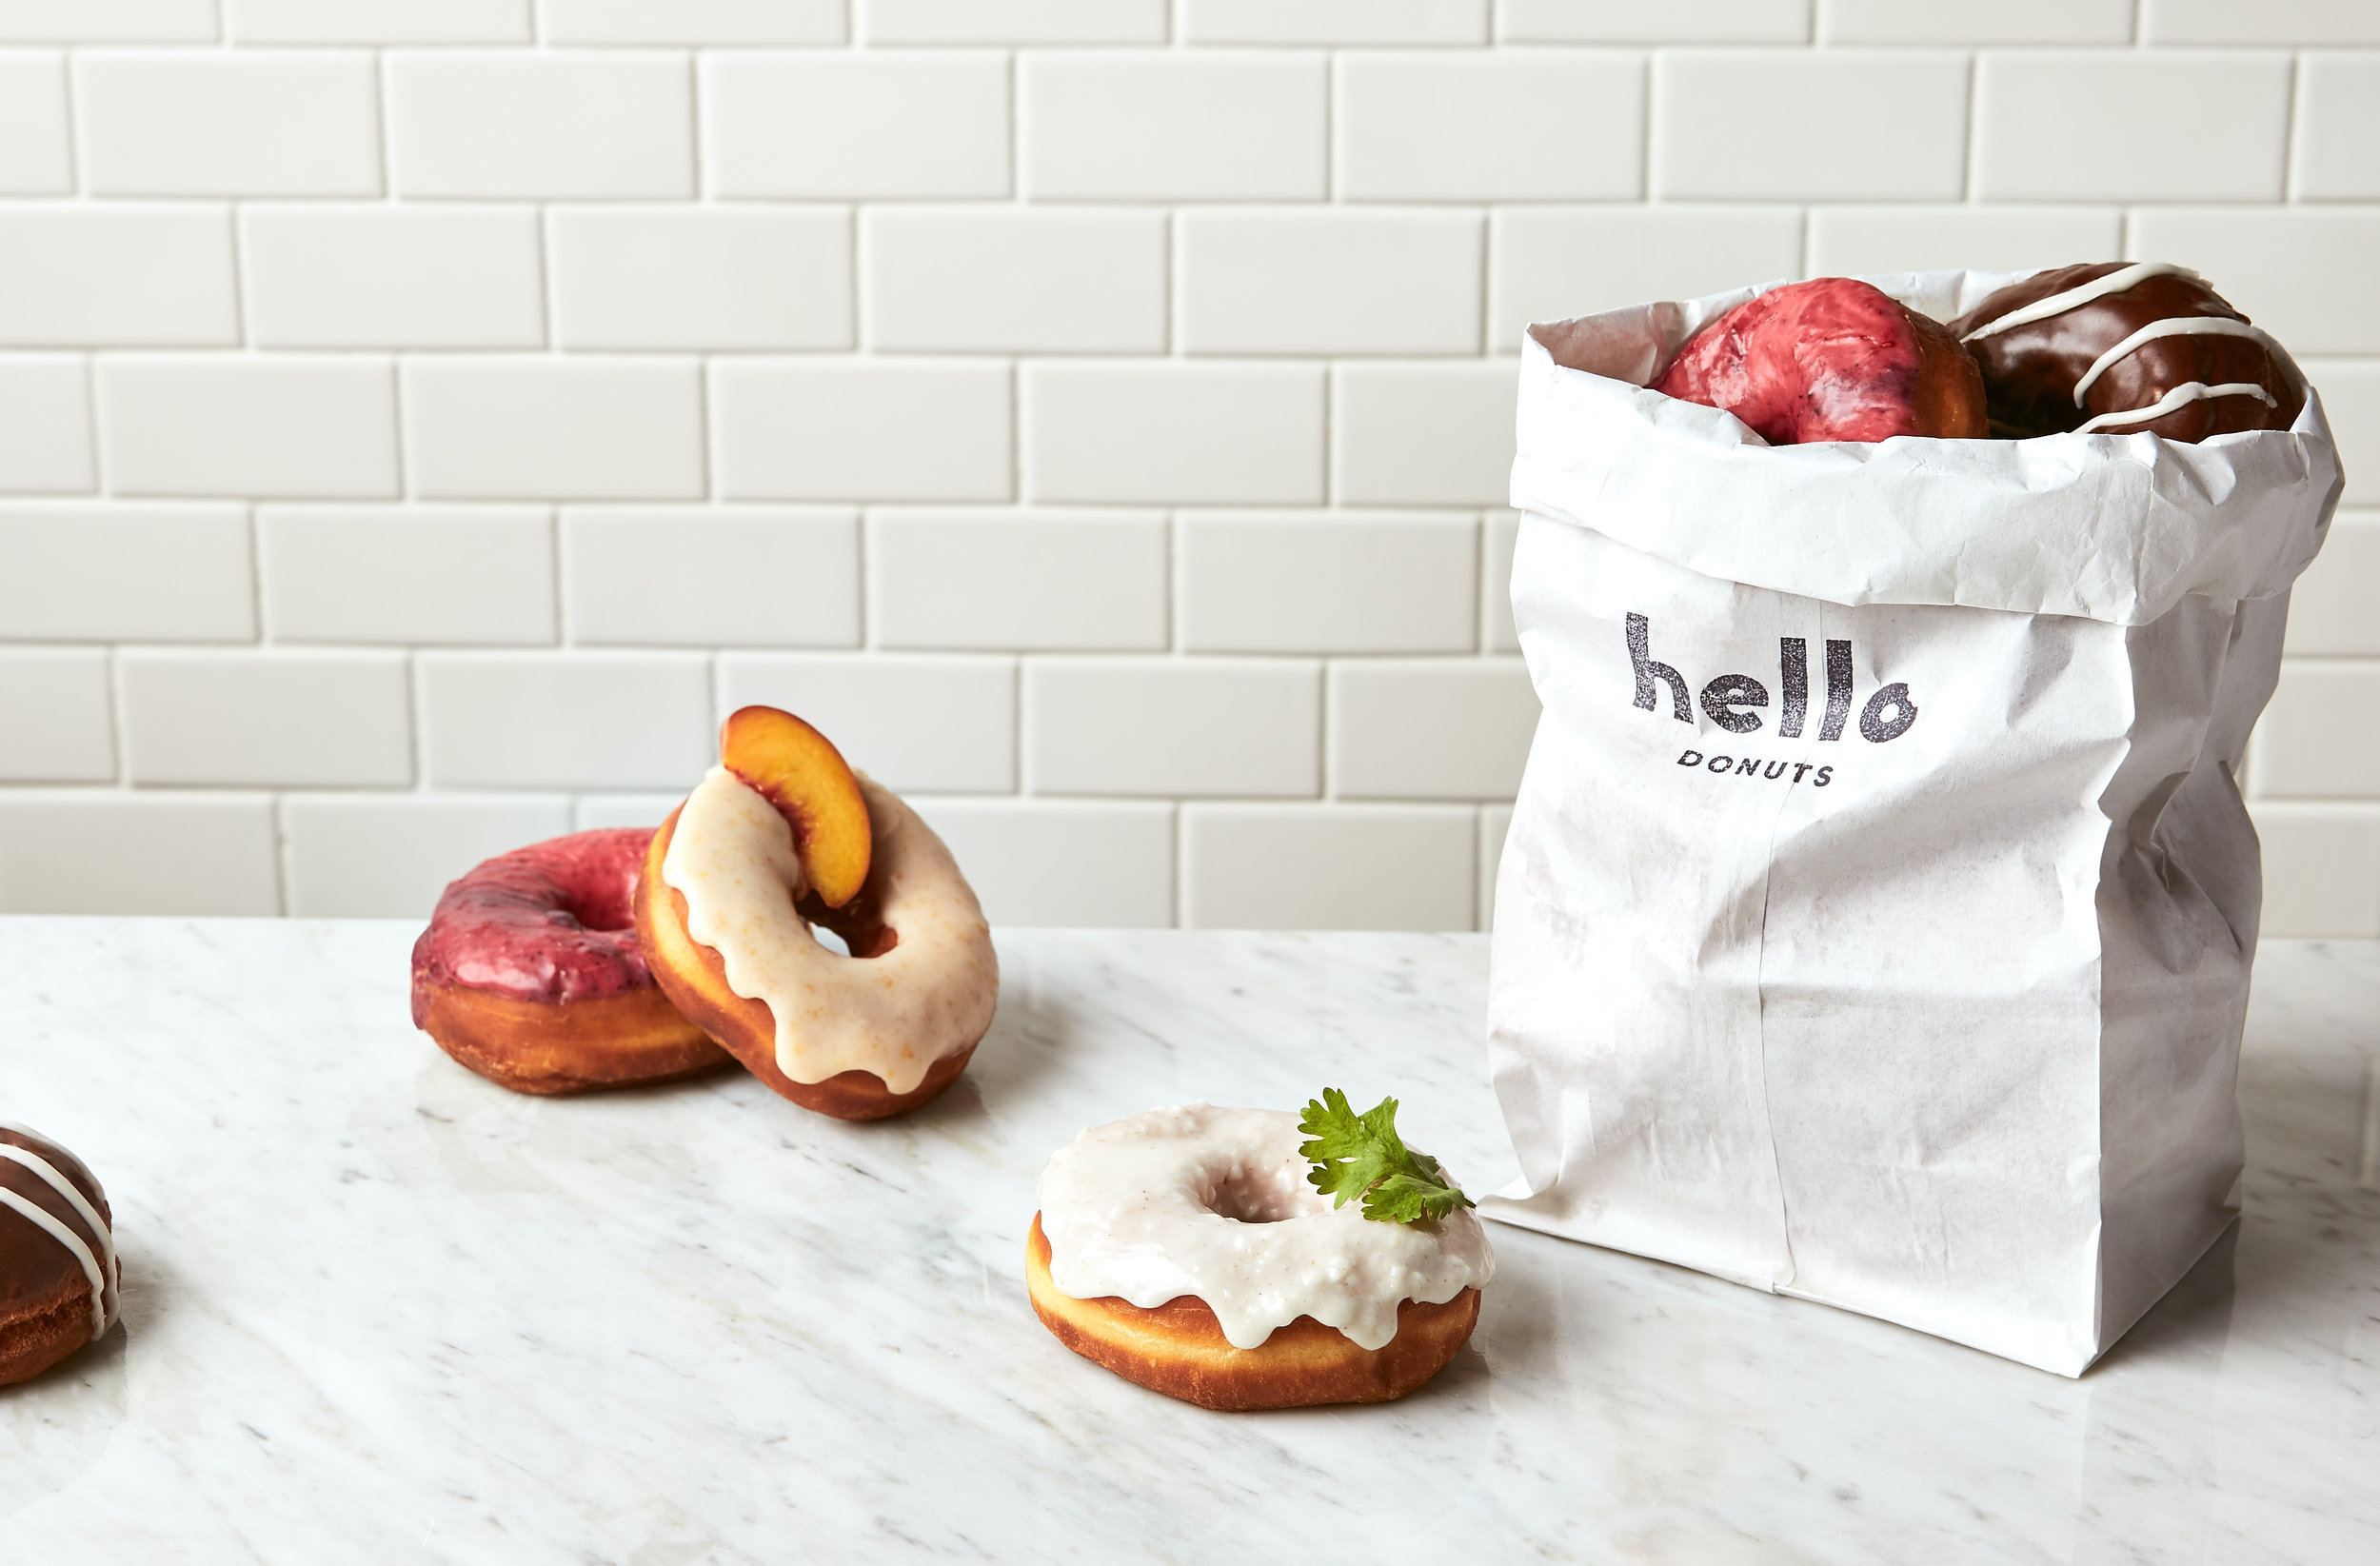 Hello - Hello Donuts + Coffee is now proudly serving house-made donuts and ReAnimator Coffee to Kensington at 2557 Amber St.Mon-Fri: 7a-6pSat-Sun: 8a-5pSay Hello!